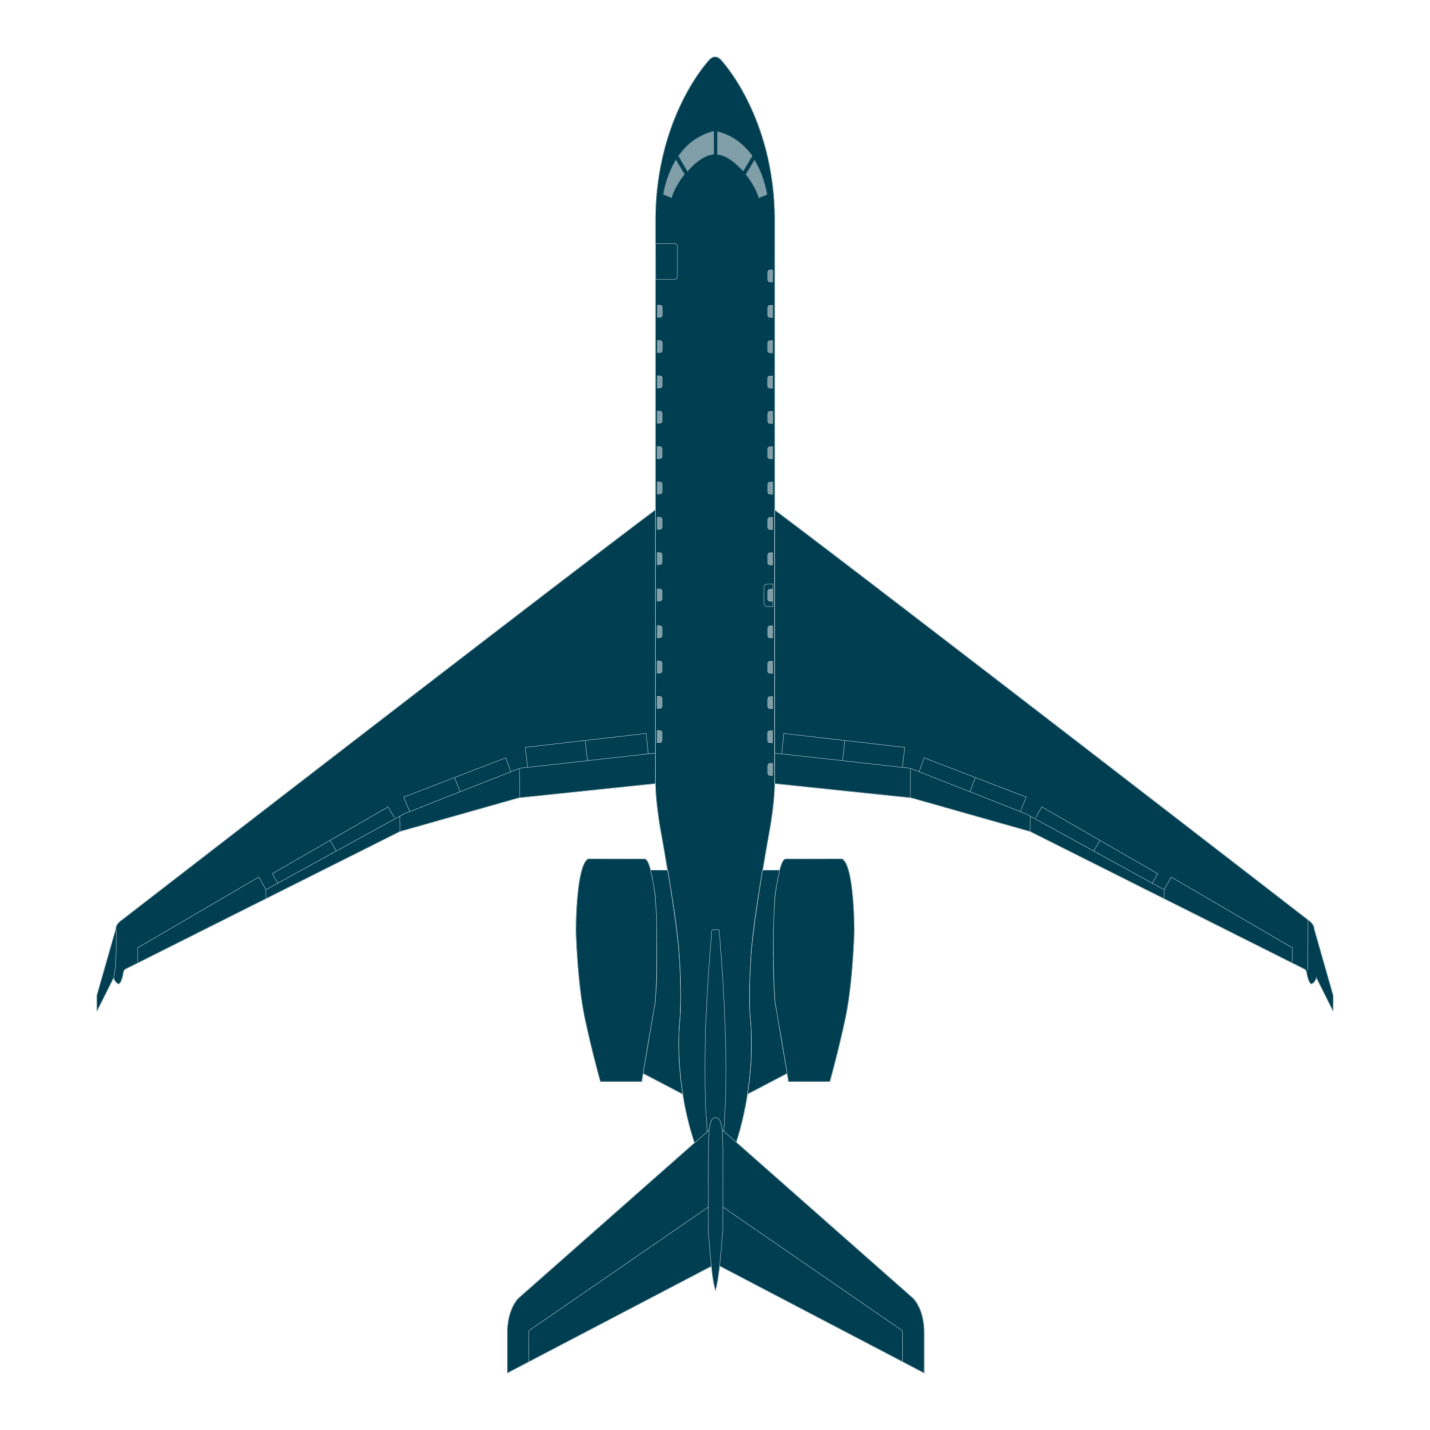 Global 6500 top view blueprint